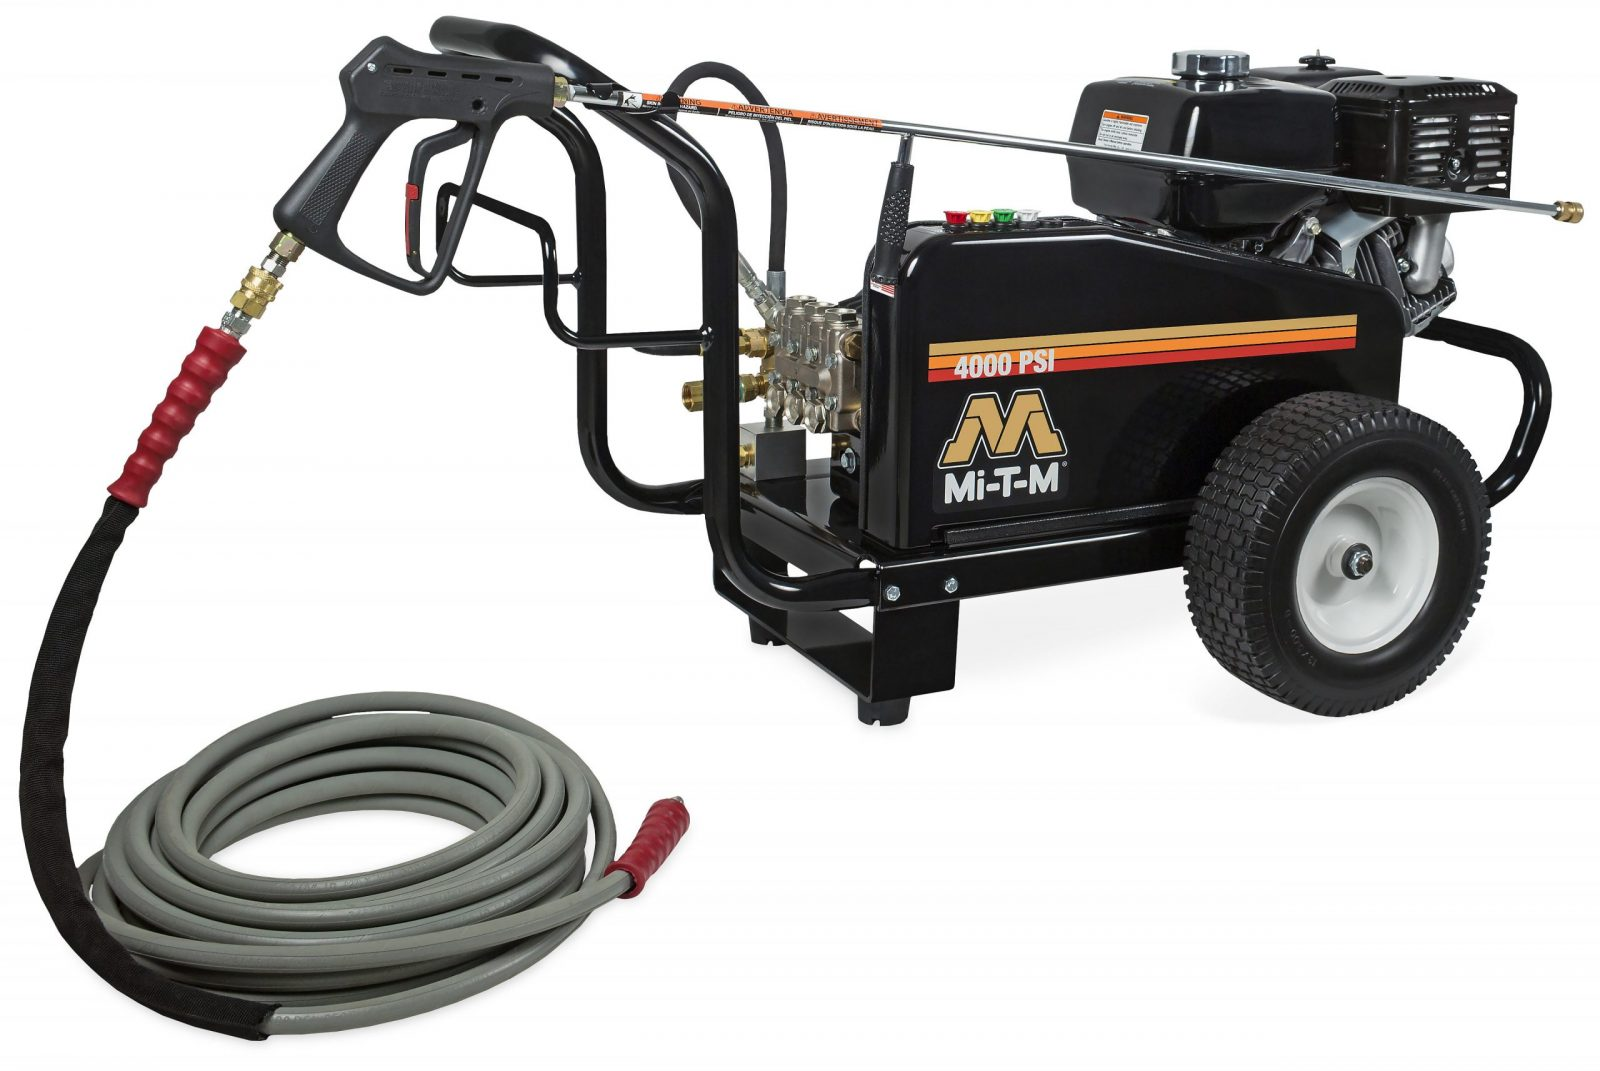 MiTM cold water pressure washer 3